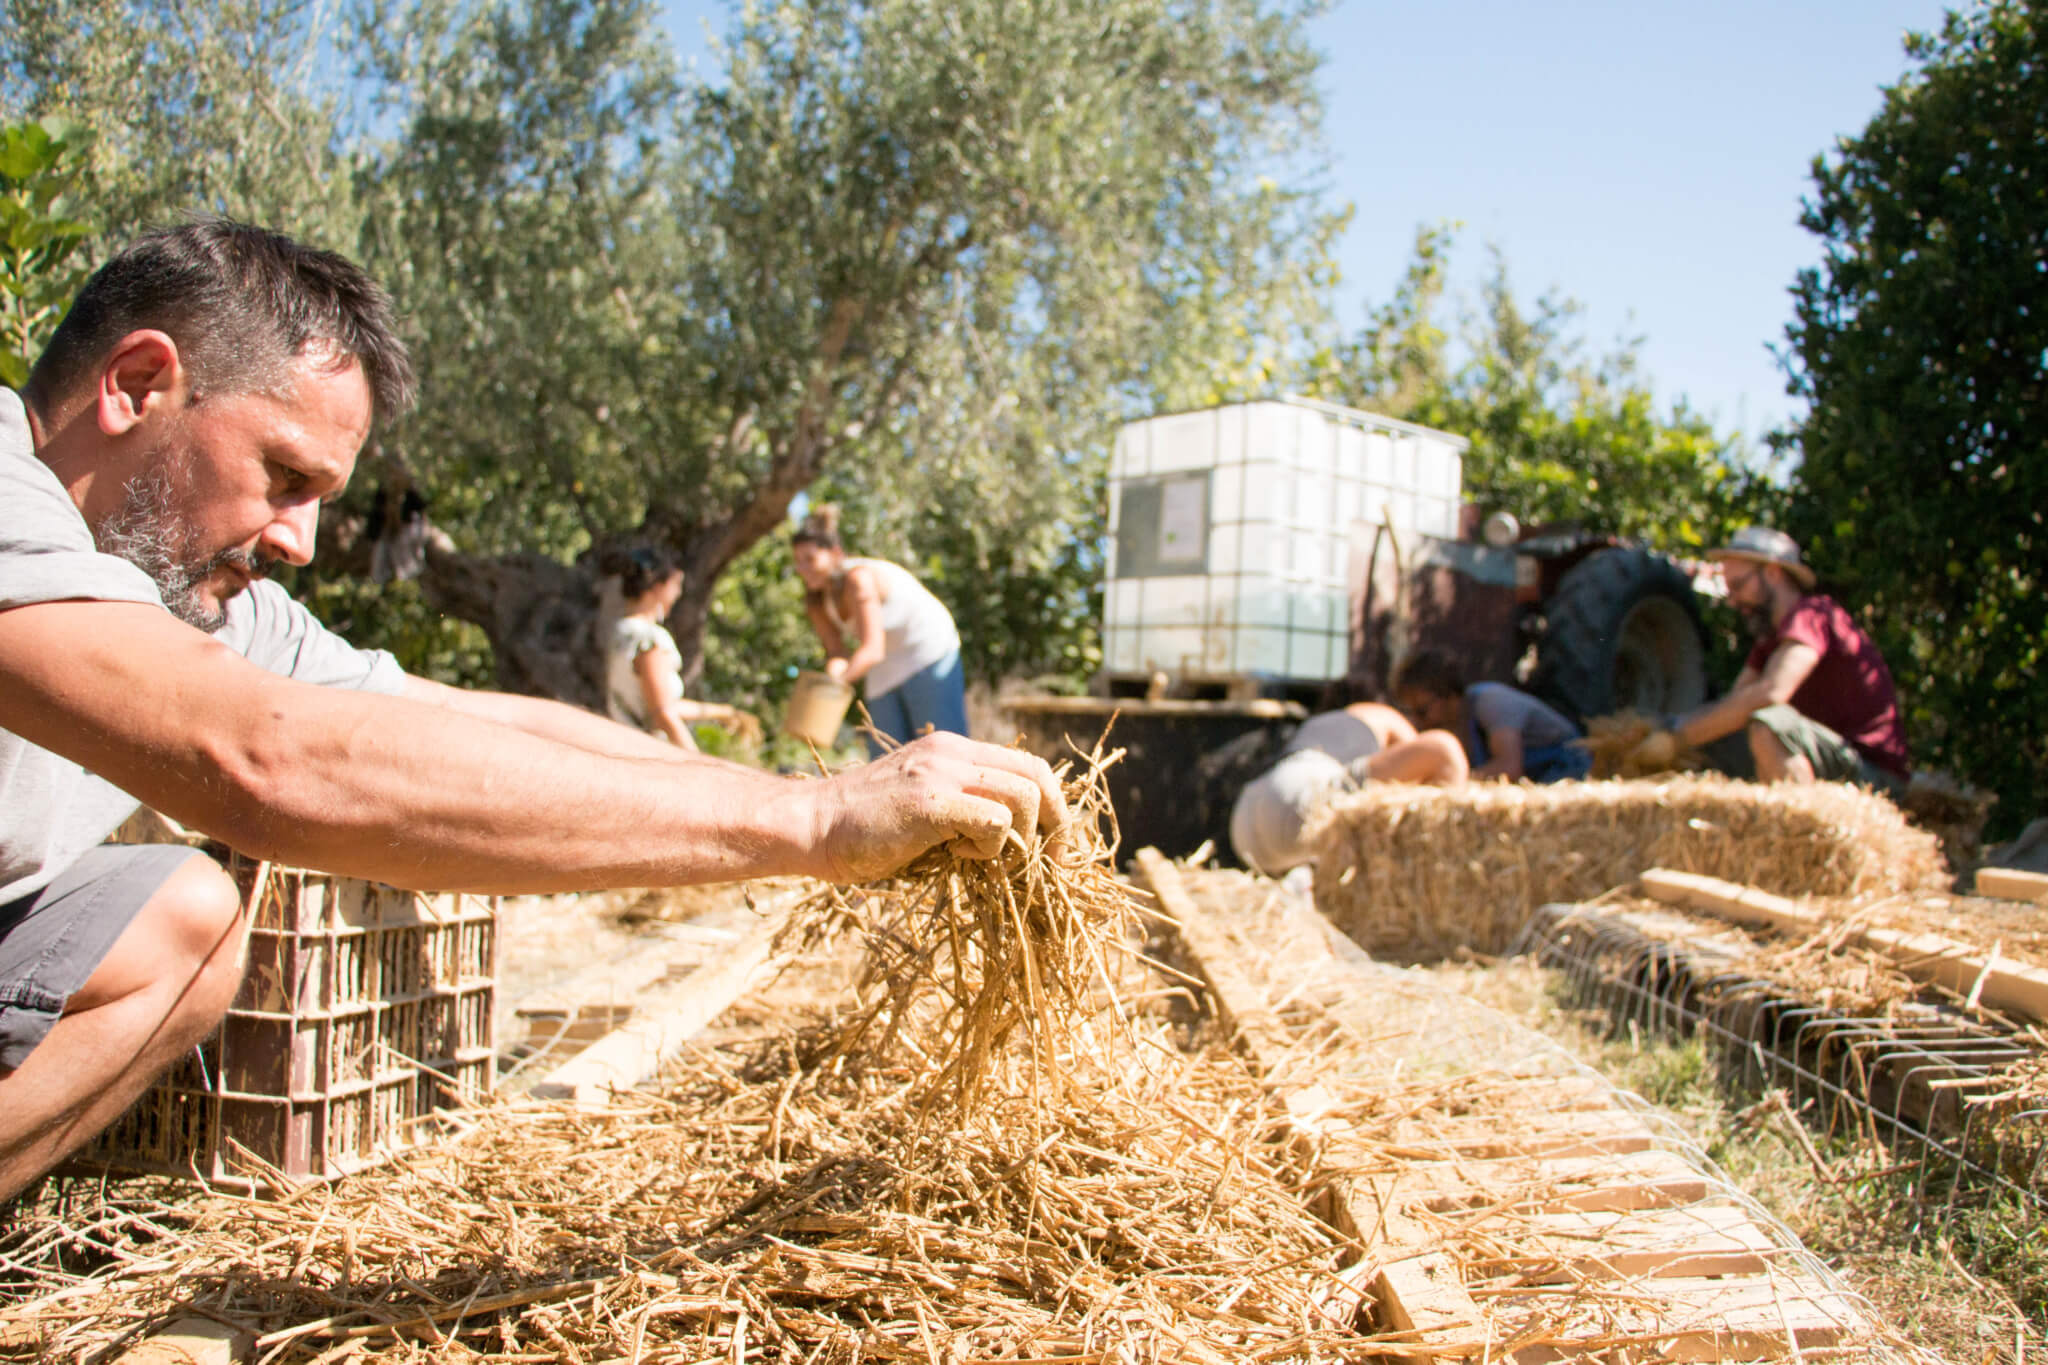 putting the straw for natural building